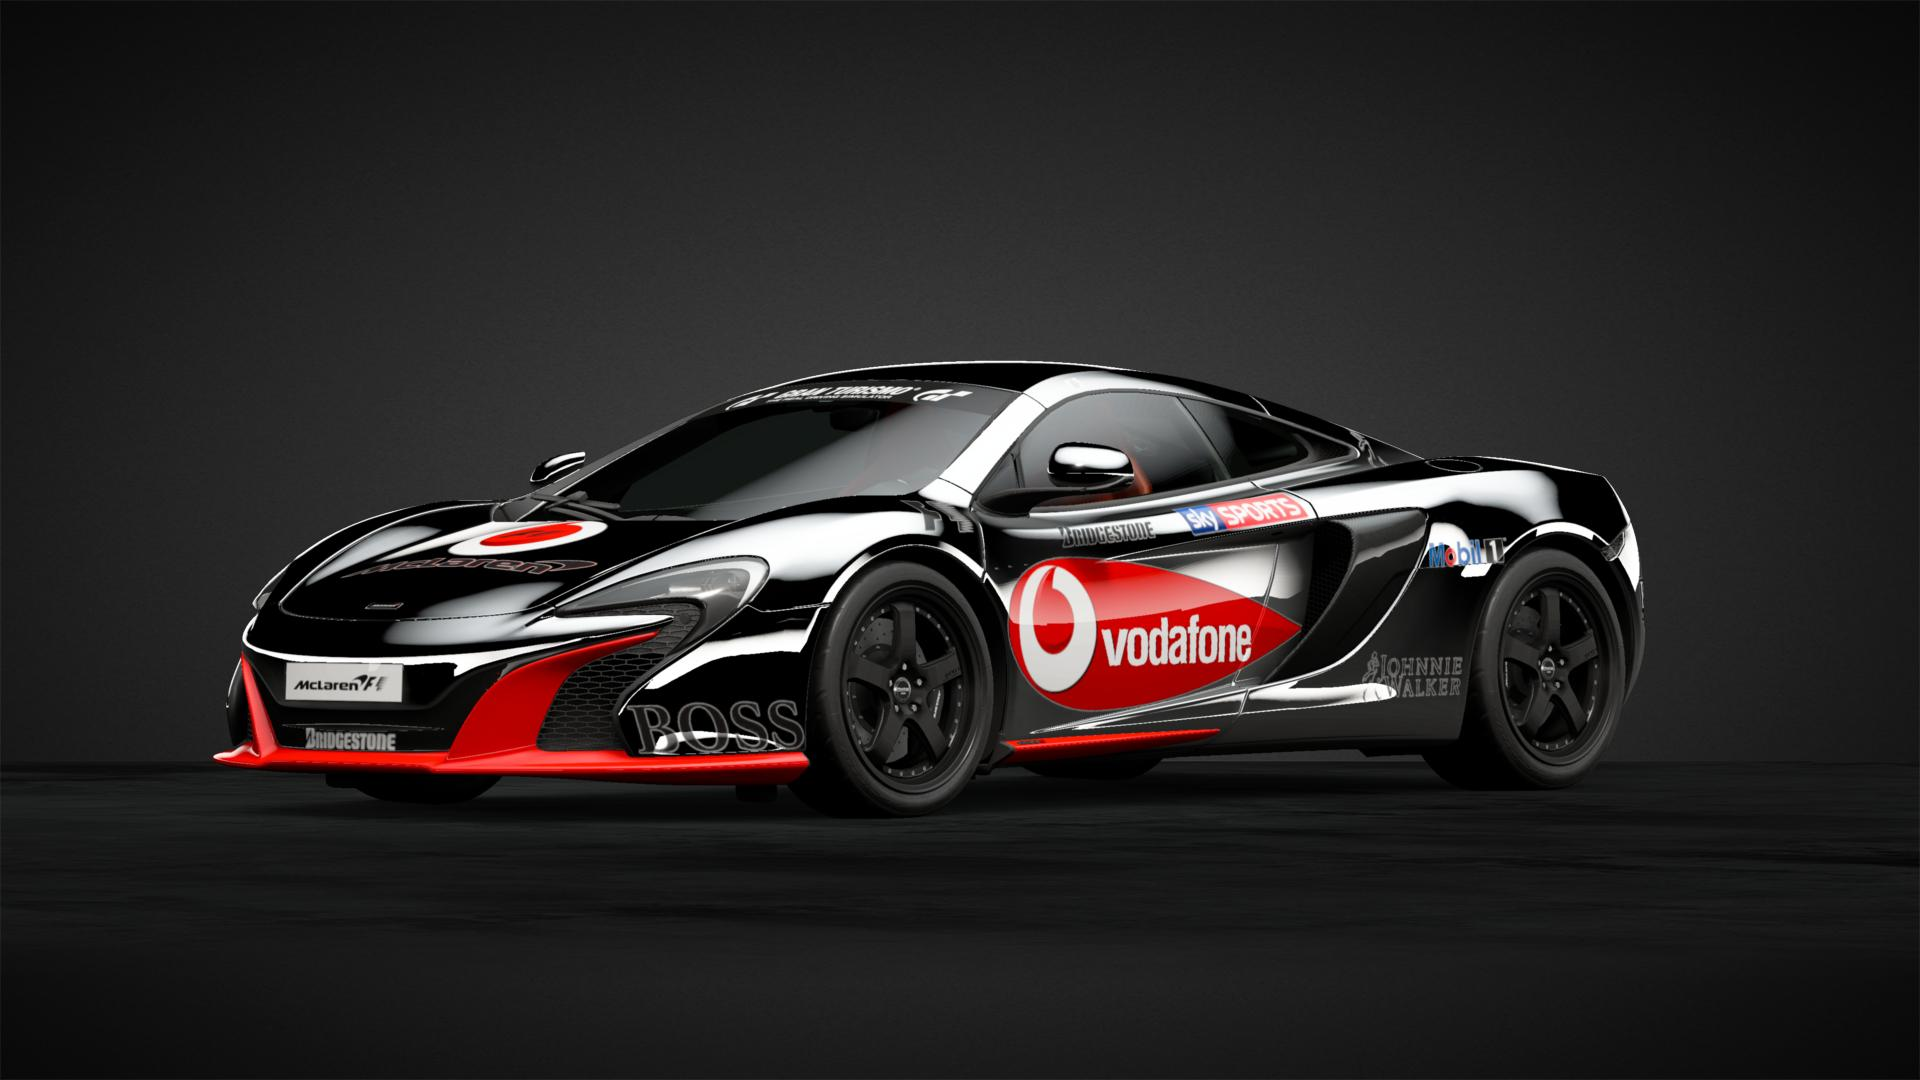 Vodafone Mclaren F1 Inspired Car Livery By Lord Of Da Memes